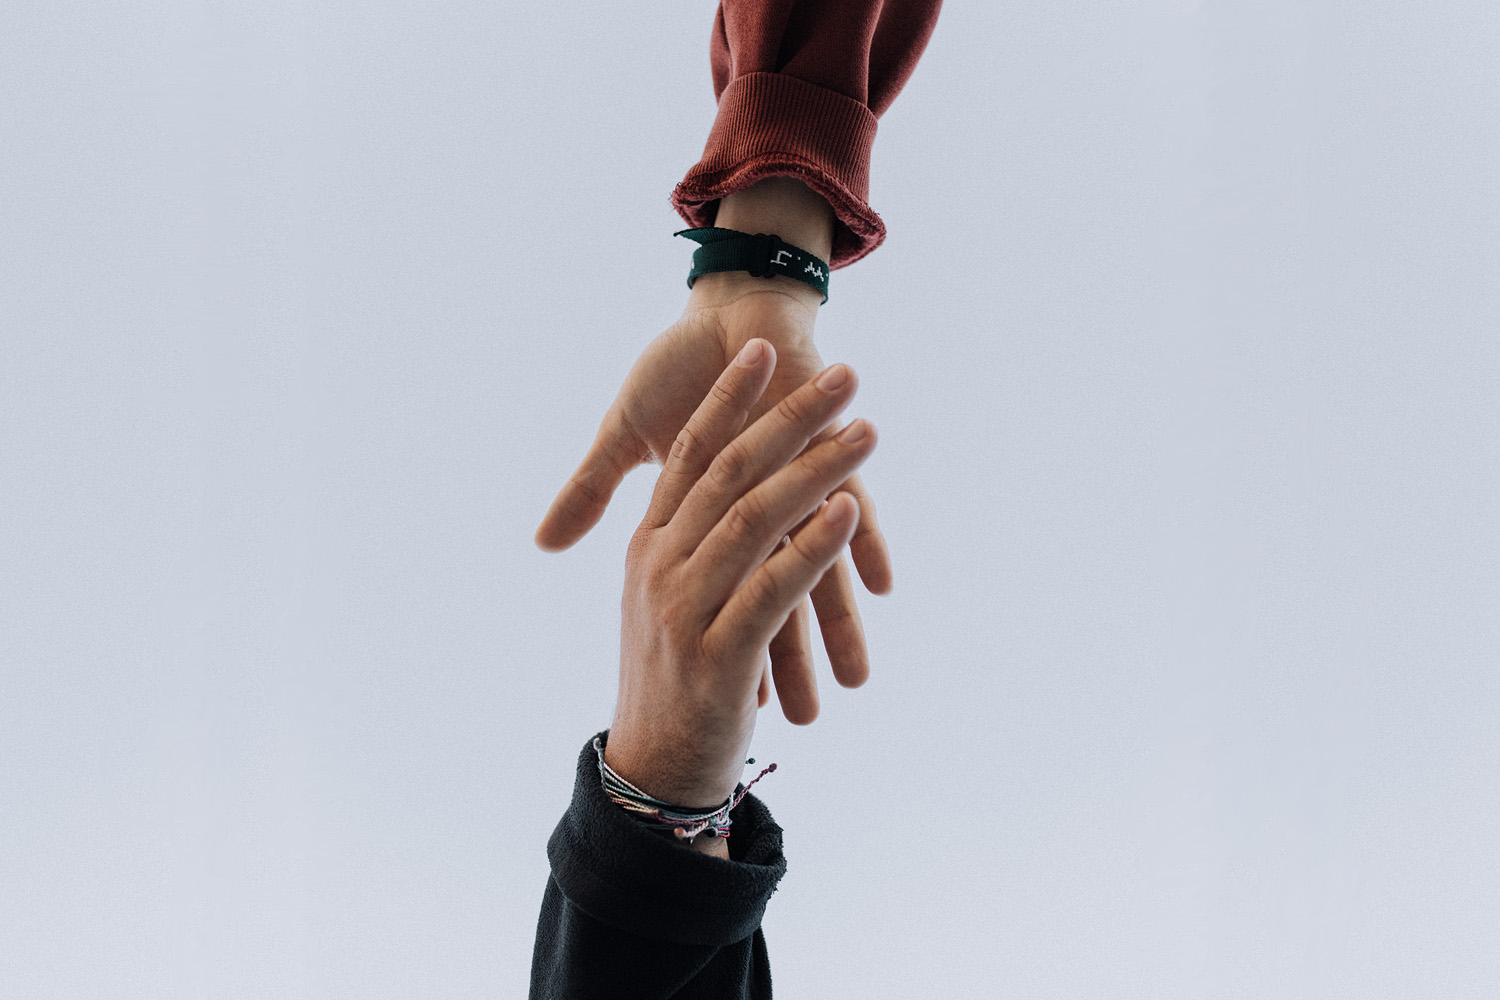 person reaching out to someone else